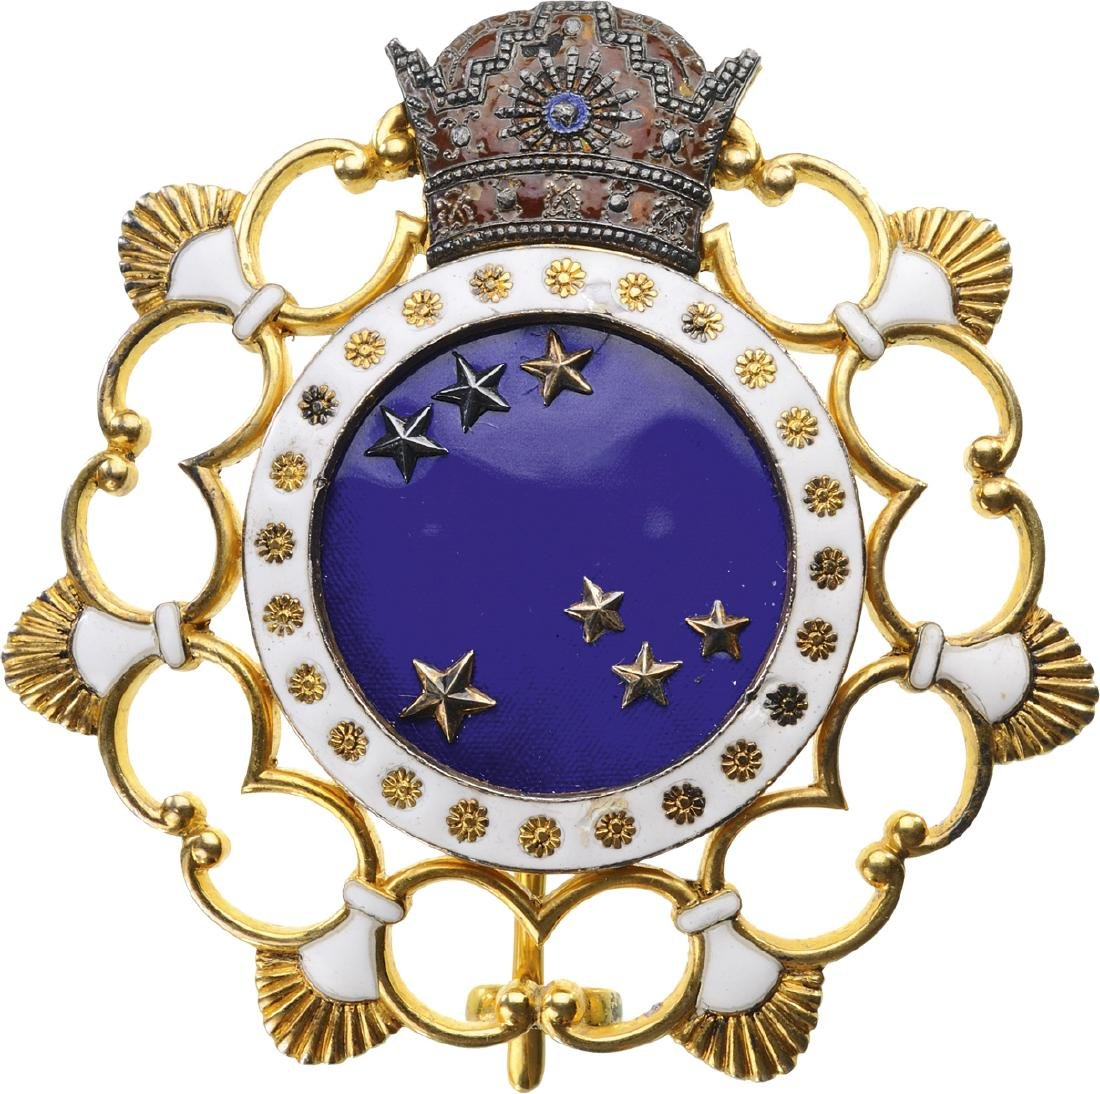 ORDER OF HAFT PAYKAR (ORDER OF THE PLEIADES)